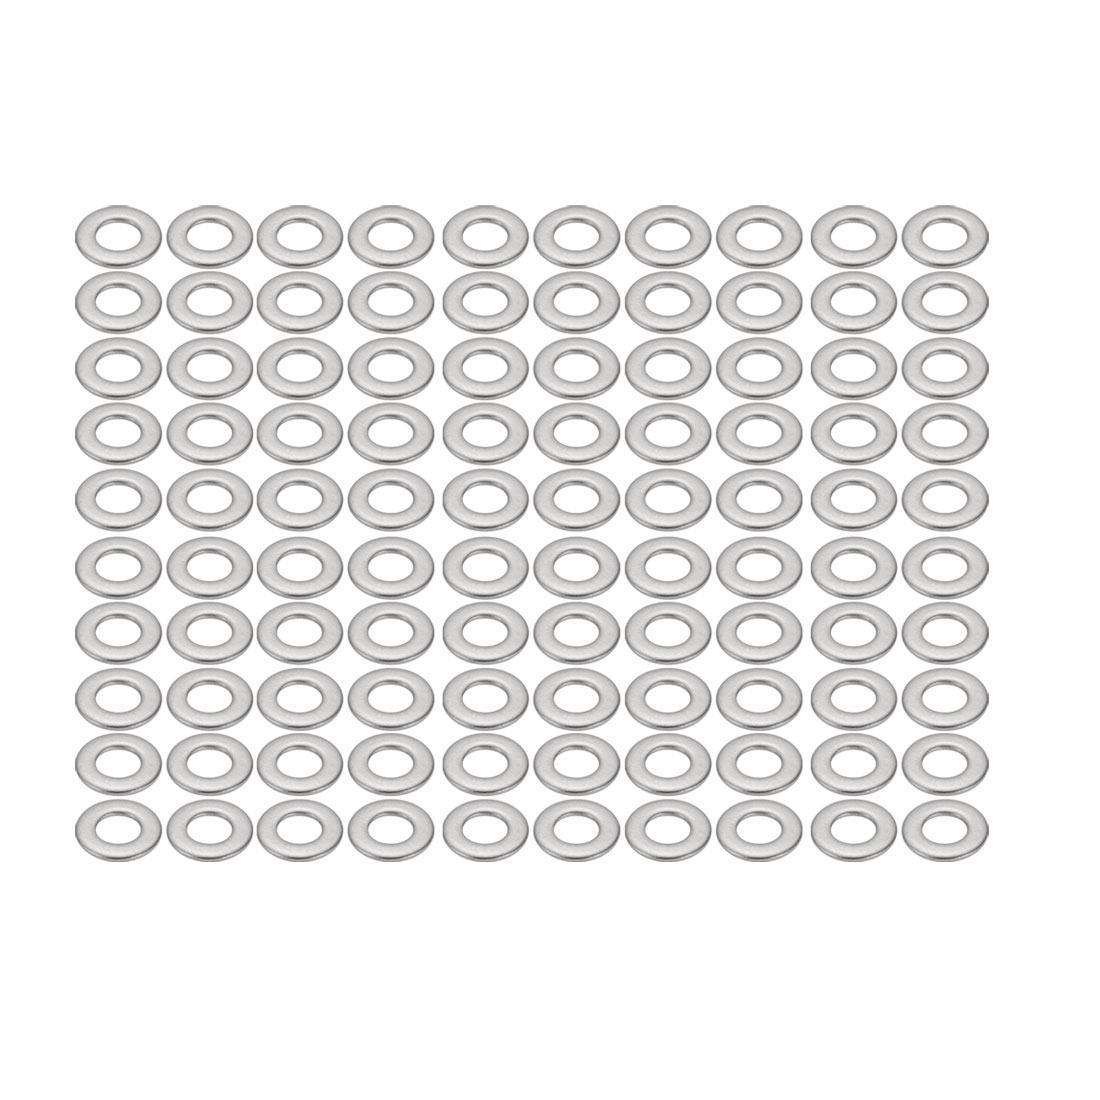 M4x9mmx0.8mm DIN125 316 Stainless Steel Flat Washer Silver Tone 100pcs